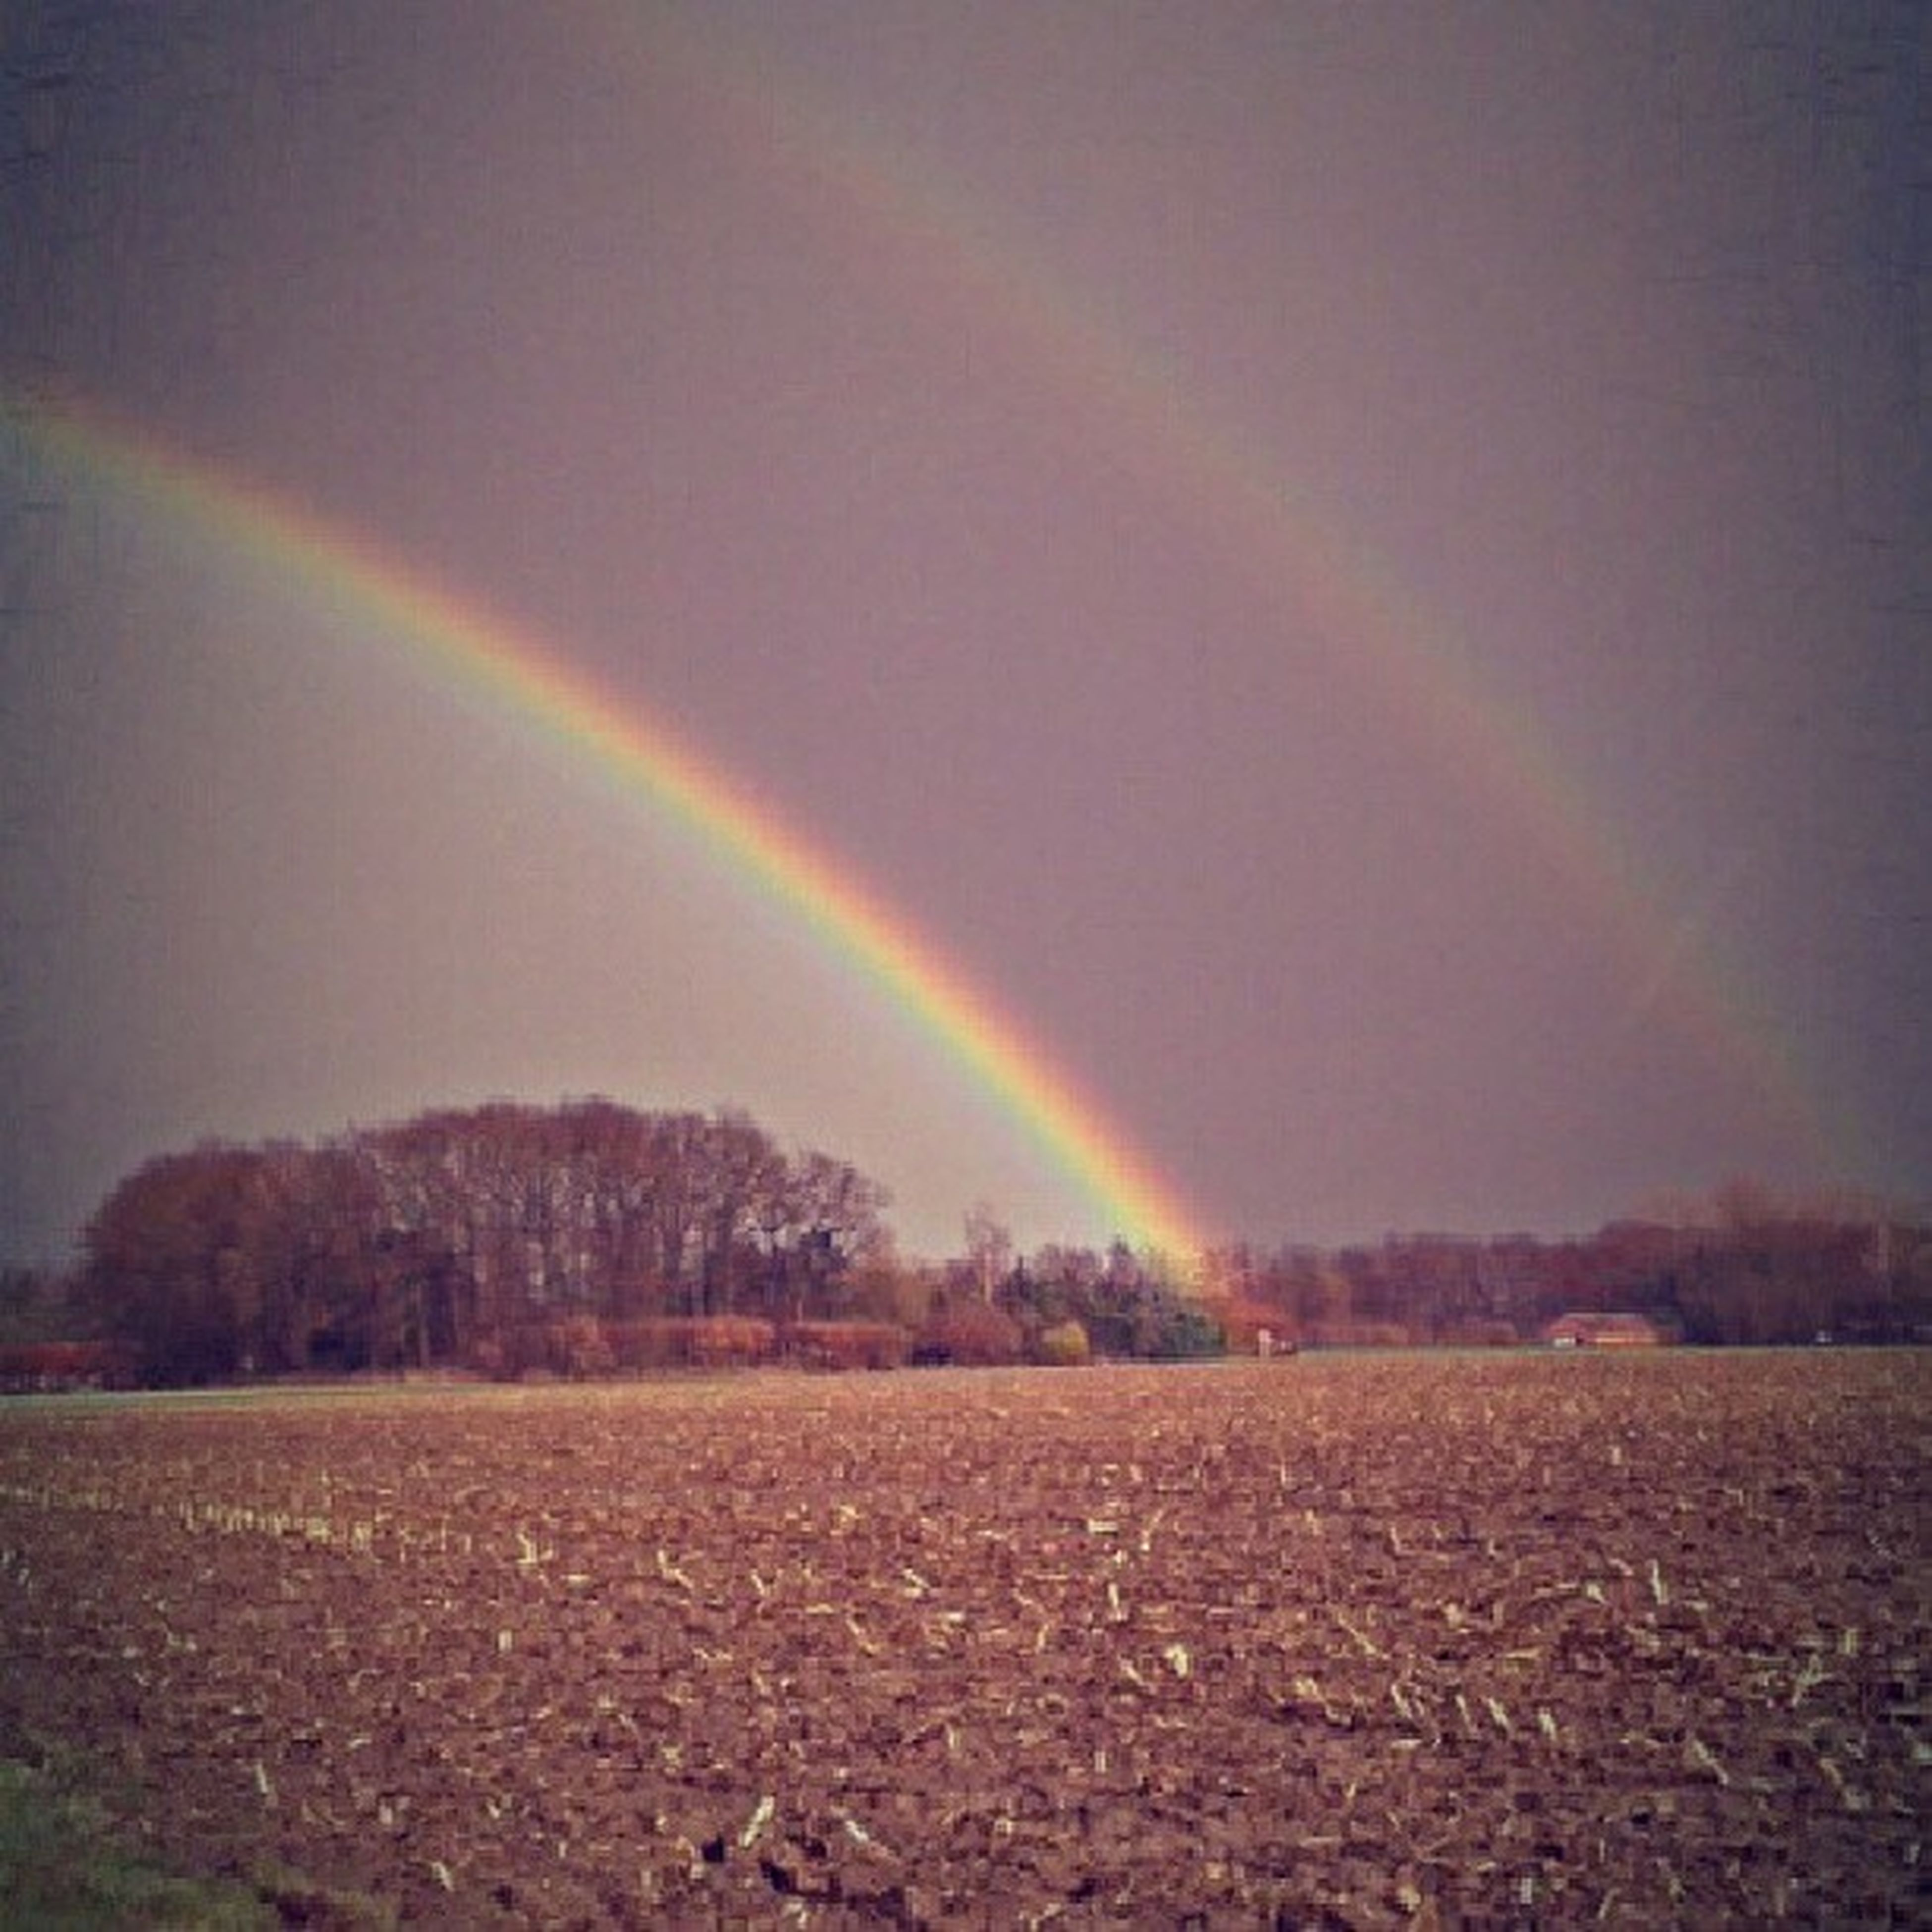 scenics, rainbow, sky, tranquil scene, landscape, multi colored, beauty in nature, tranquility, nature, idyllic, cloud - sky, non-urban scene, outdoors, no people, field, night, remote, mountain, weather, dramatic sky